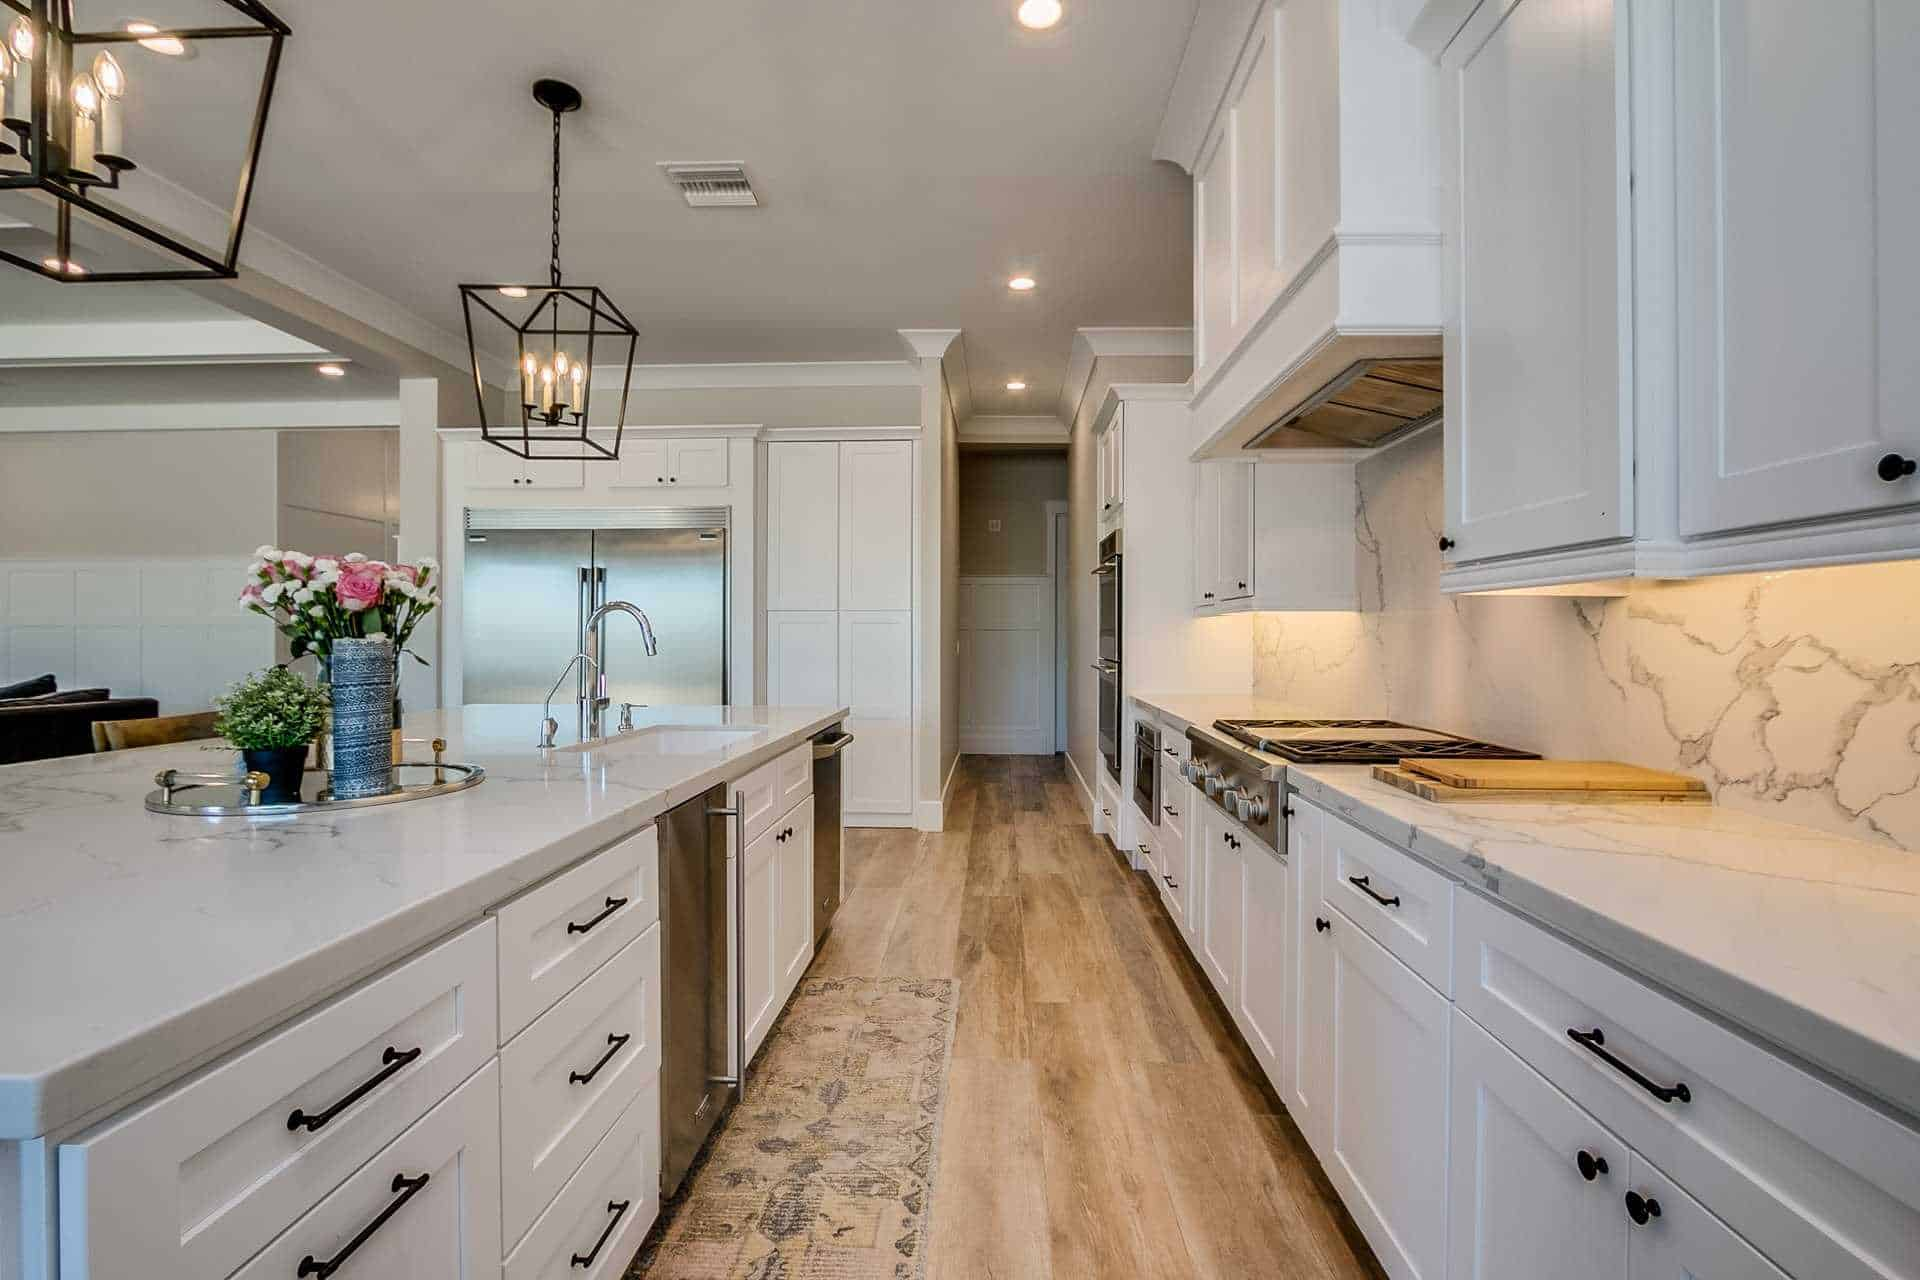 Madera custom kitchen cabinets 3